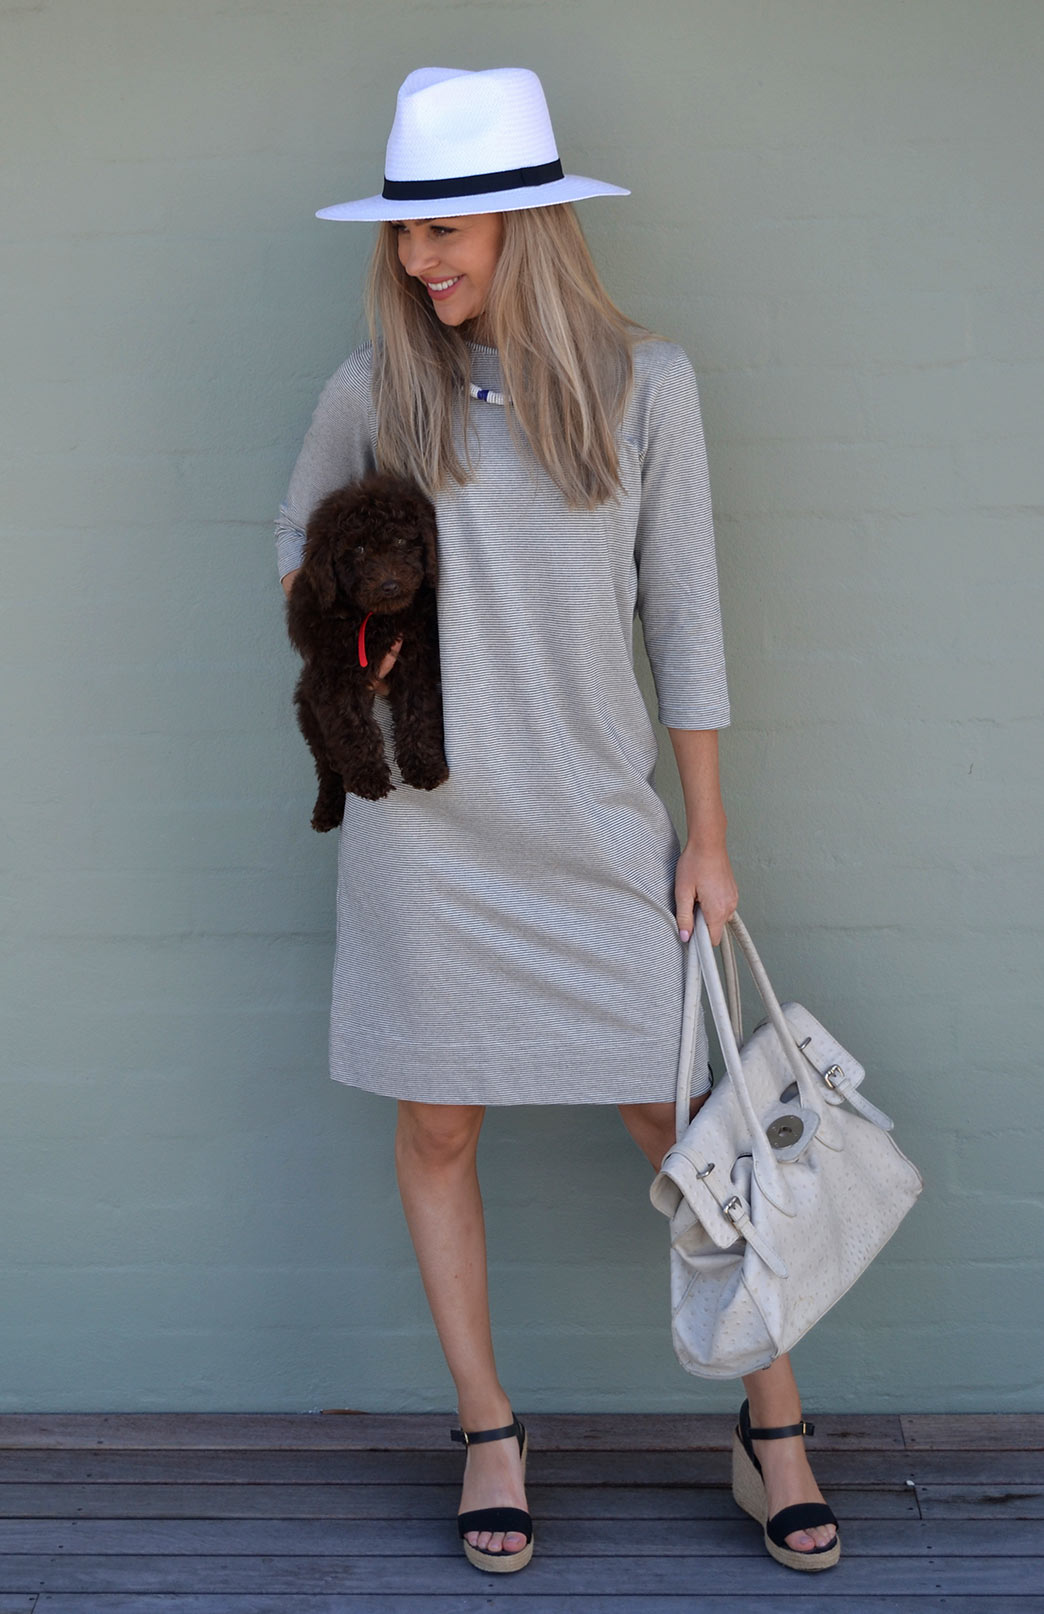 Audrey Dress - Organic Cotton - Women's Organic Cotton 3/4 Sleeve Summer Dress - Smitten Merino Tasmania Australia